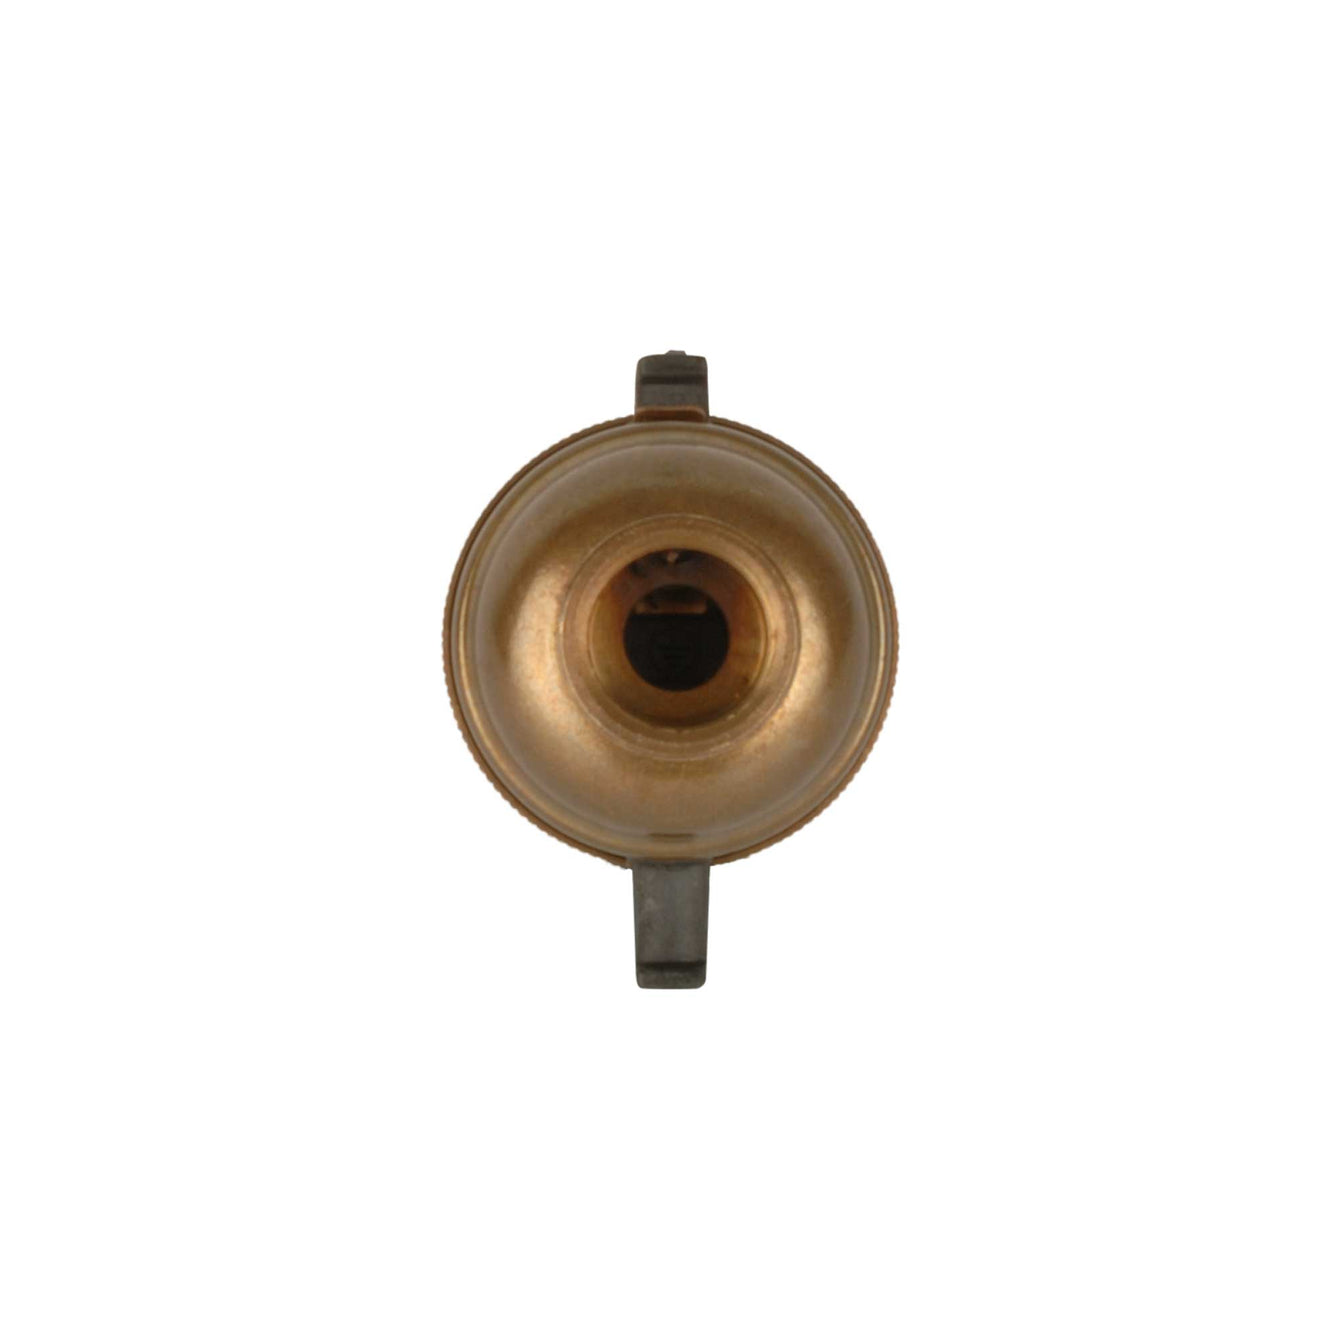 ElekTek Safety Switch Lamp Holder Bayonet Cap B22 10mm or Half Inch Entry With Shade Ring Solid Brass - Buy It Better Nickel / 10mm